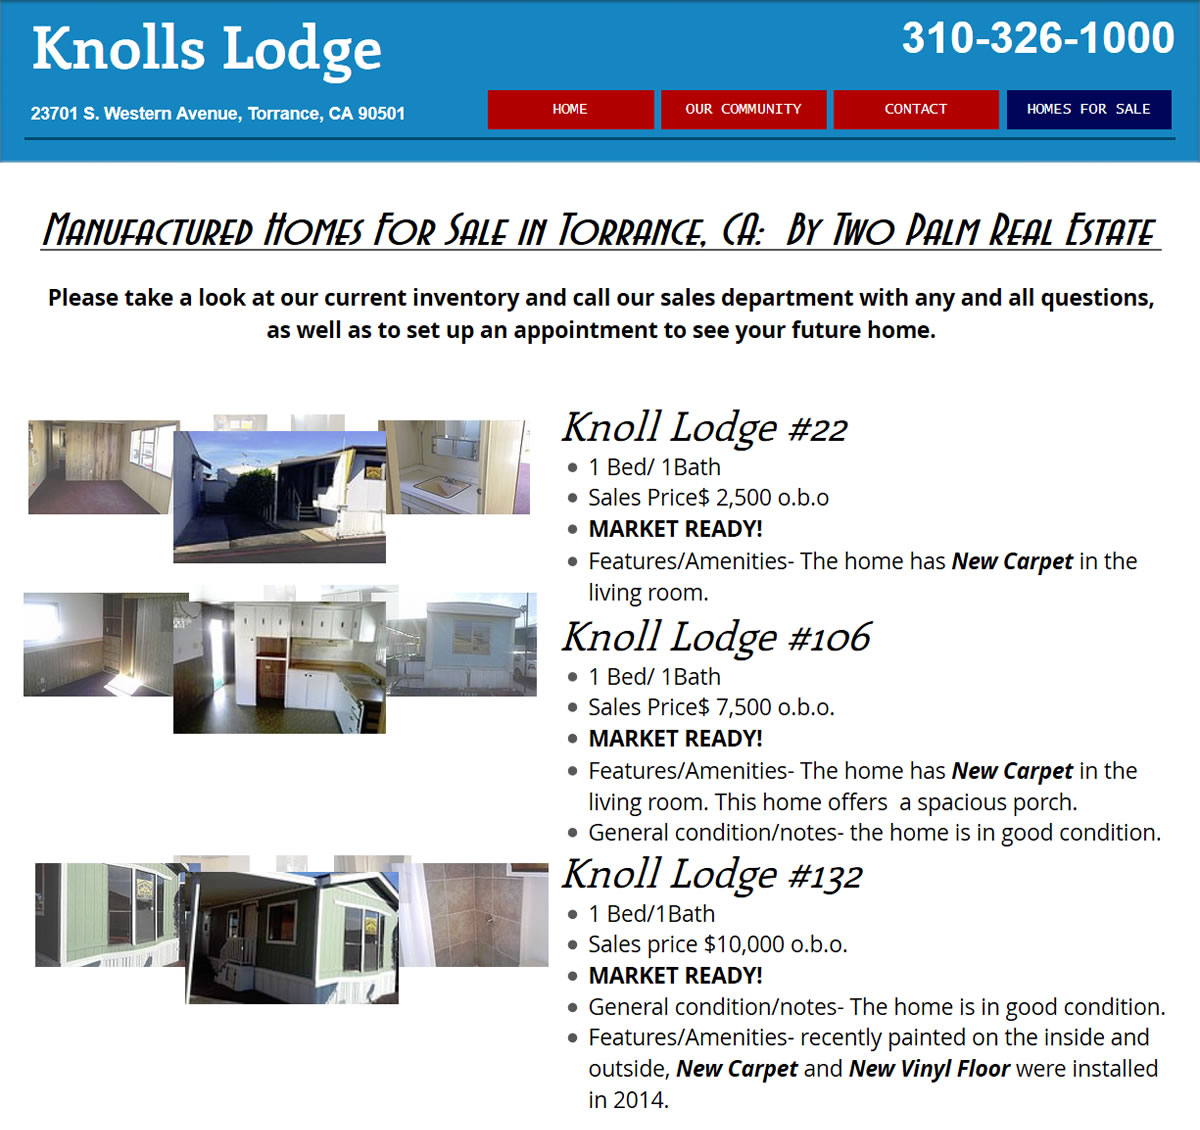 Screenshot Mobile Homes For Sale At Knolls Lodge Home Park In California By Two